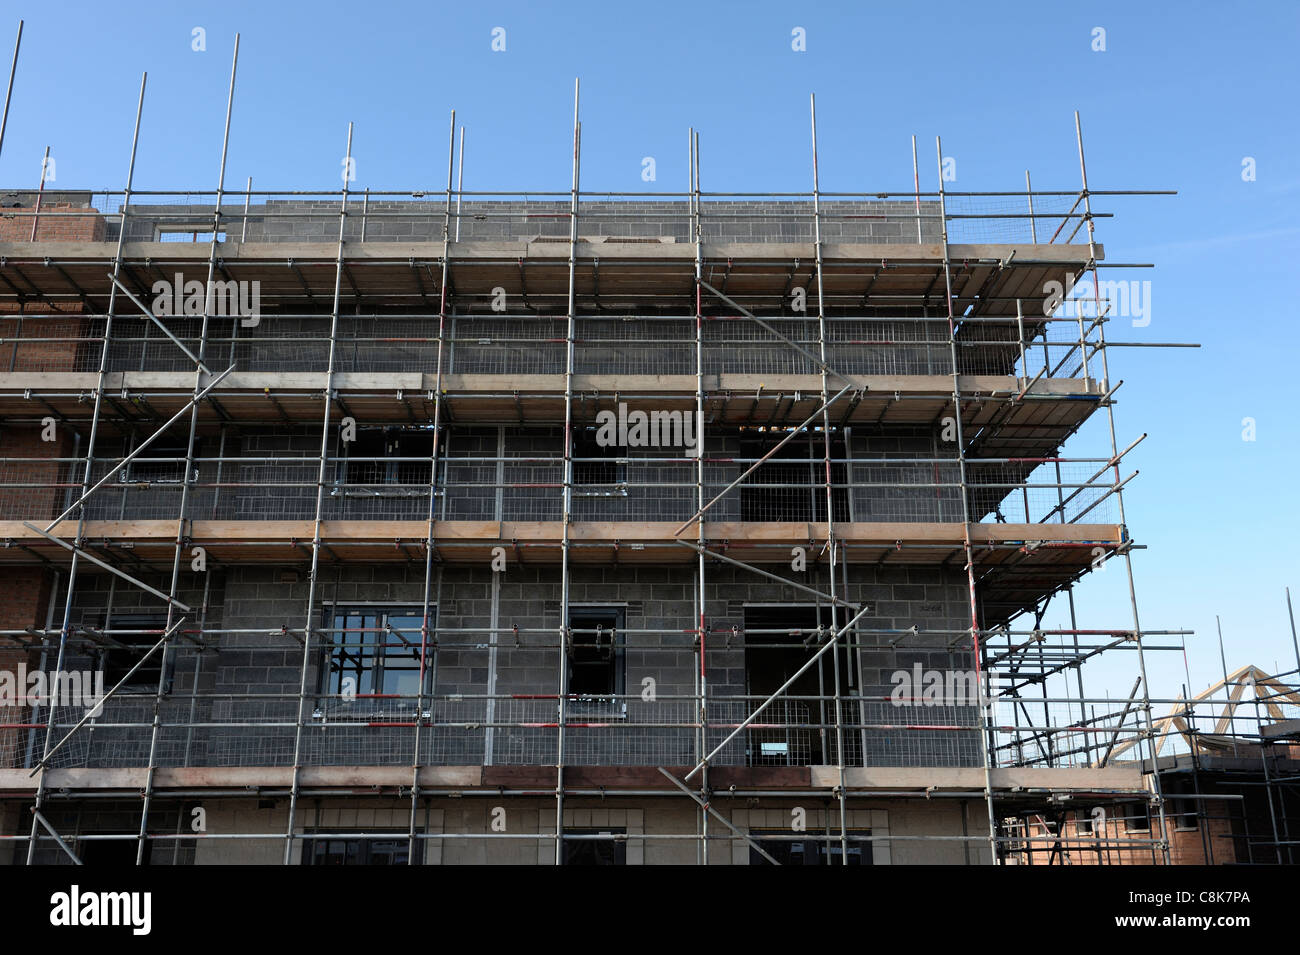 Scaffolding on a building site Stock Photo